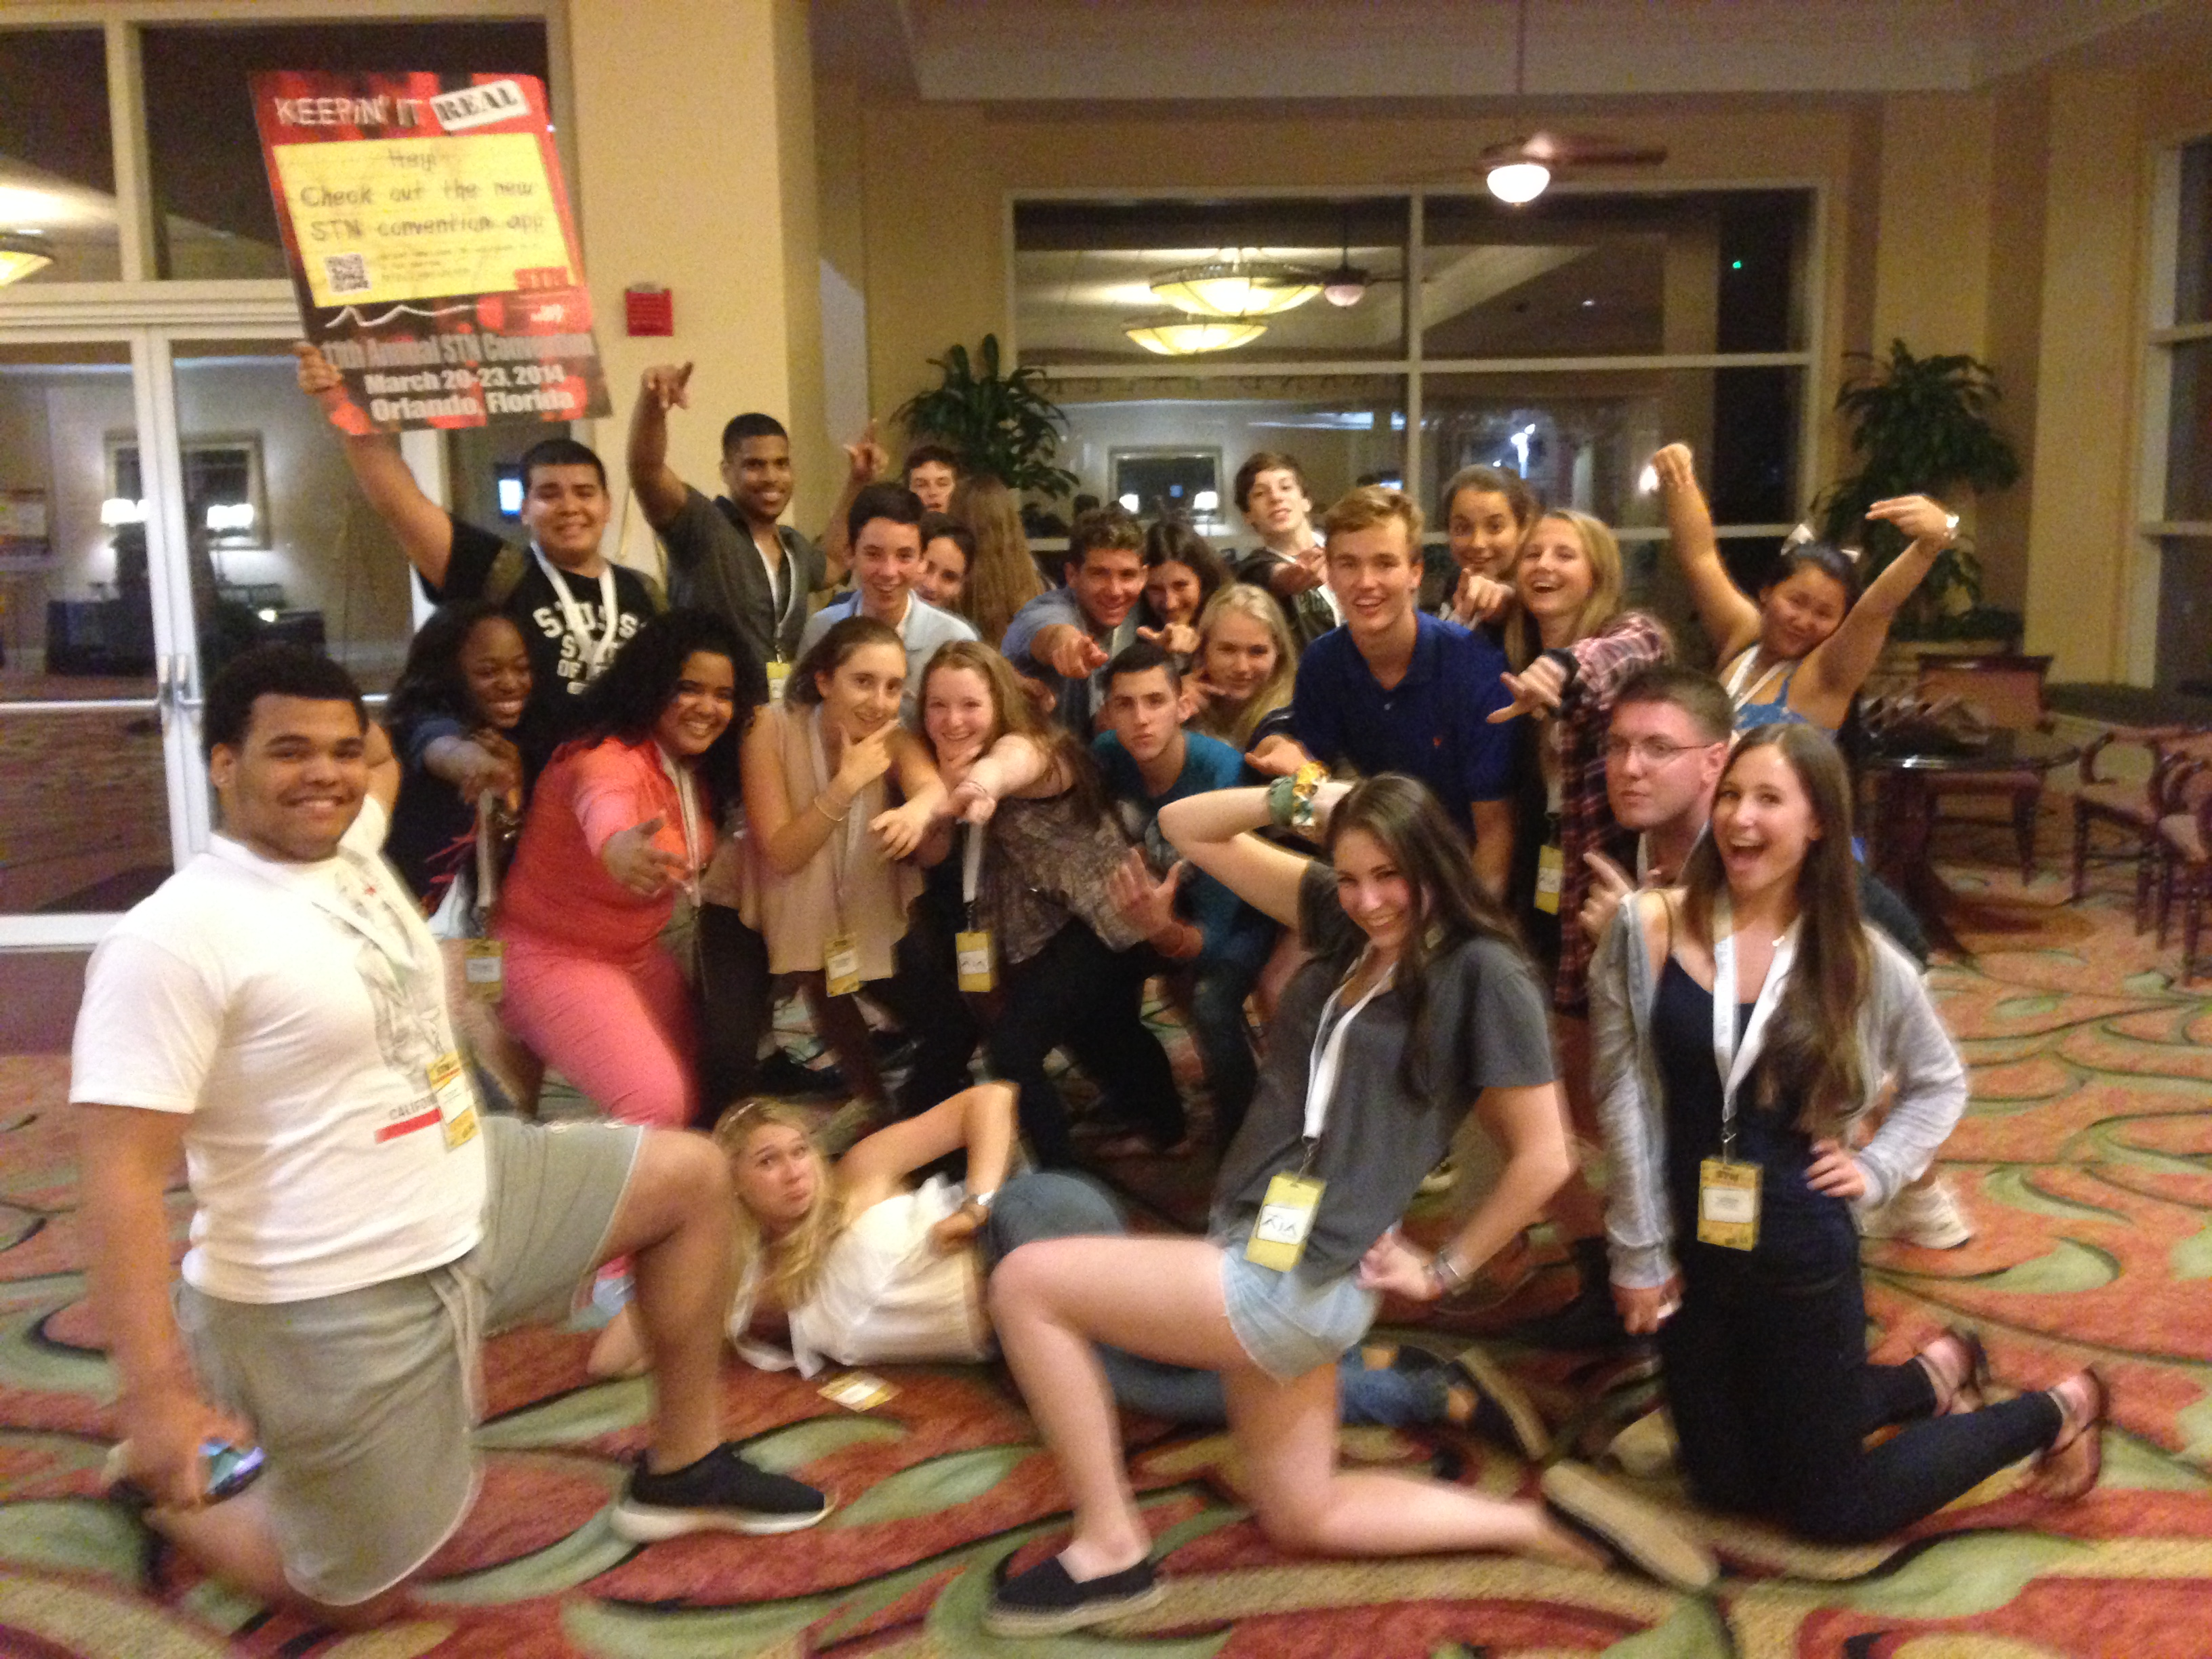 Media Students Attend Stn National Convention In Orlando